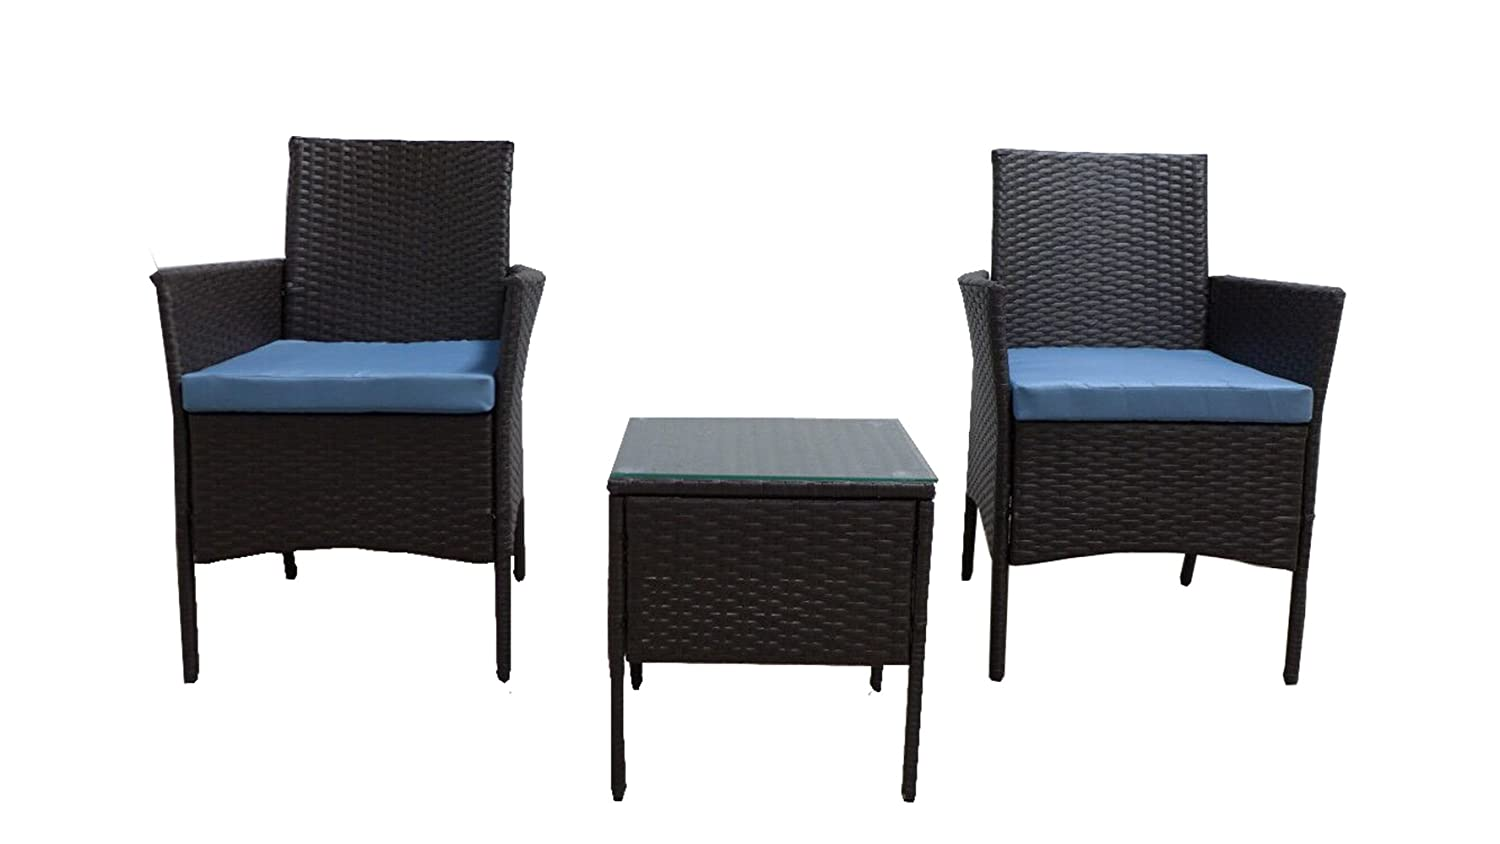 GOJOOASIS Rattan Patio Outdoor Armchairs PE Wicker Furniture 3 Piece Conversation Set Garden Table and Chairs with Blue Cushions, Brown